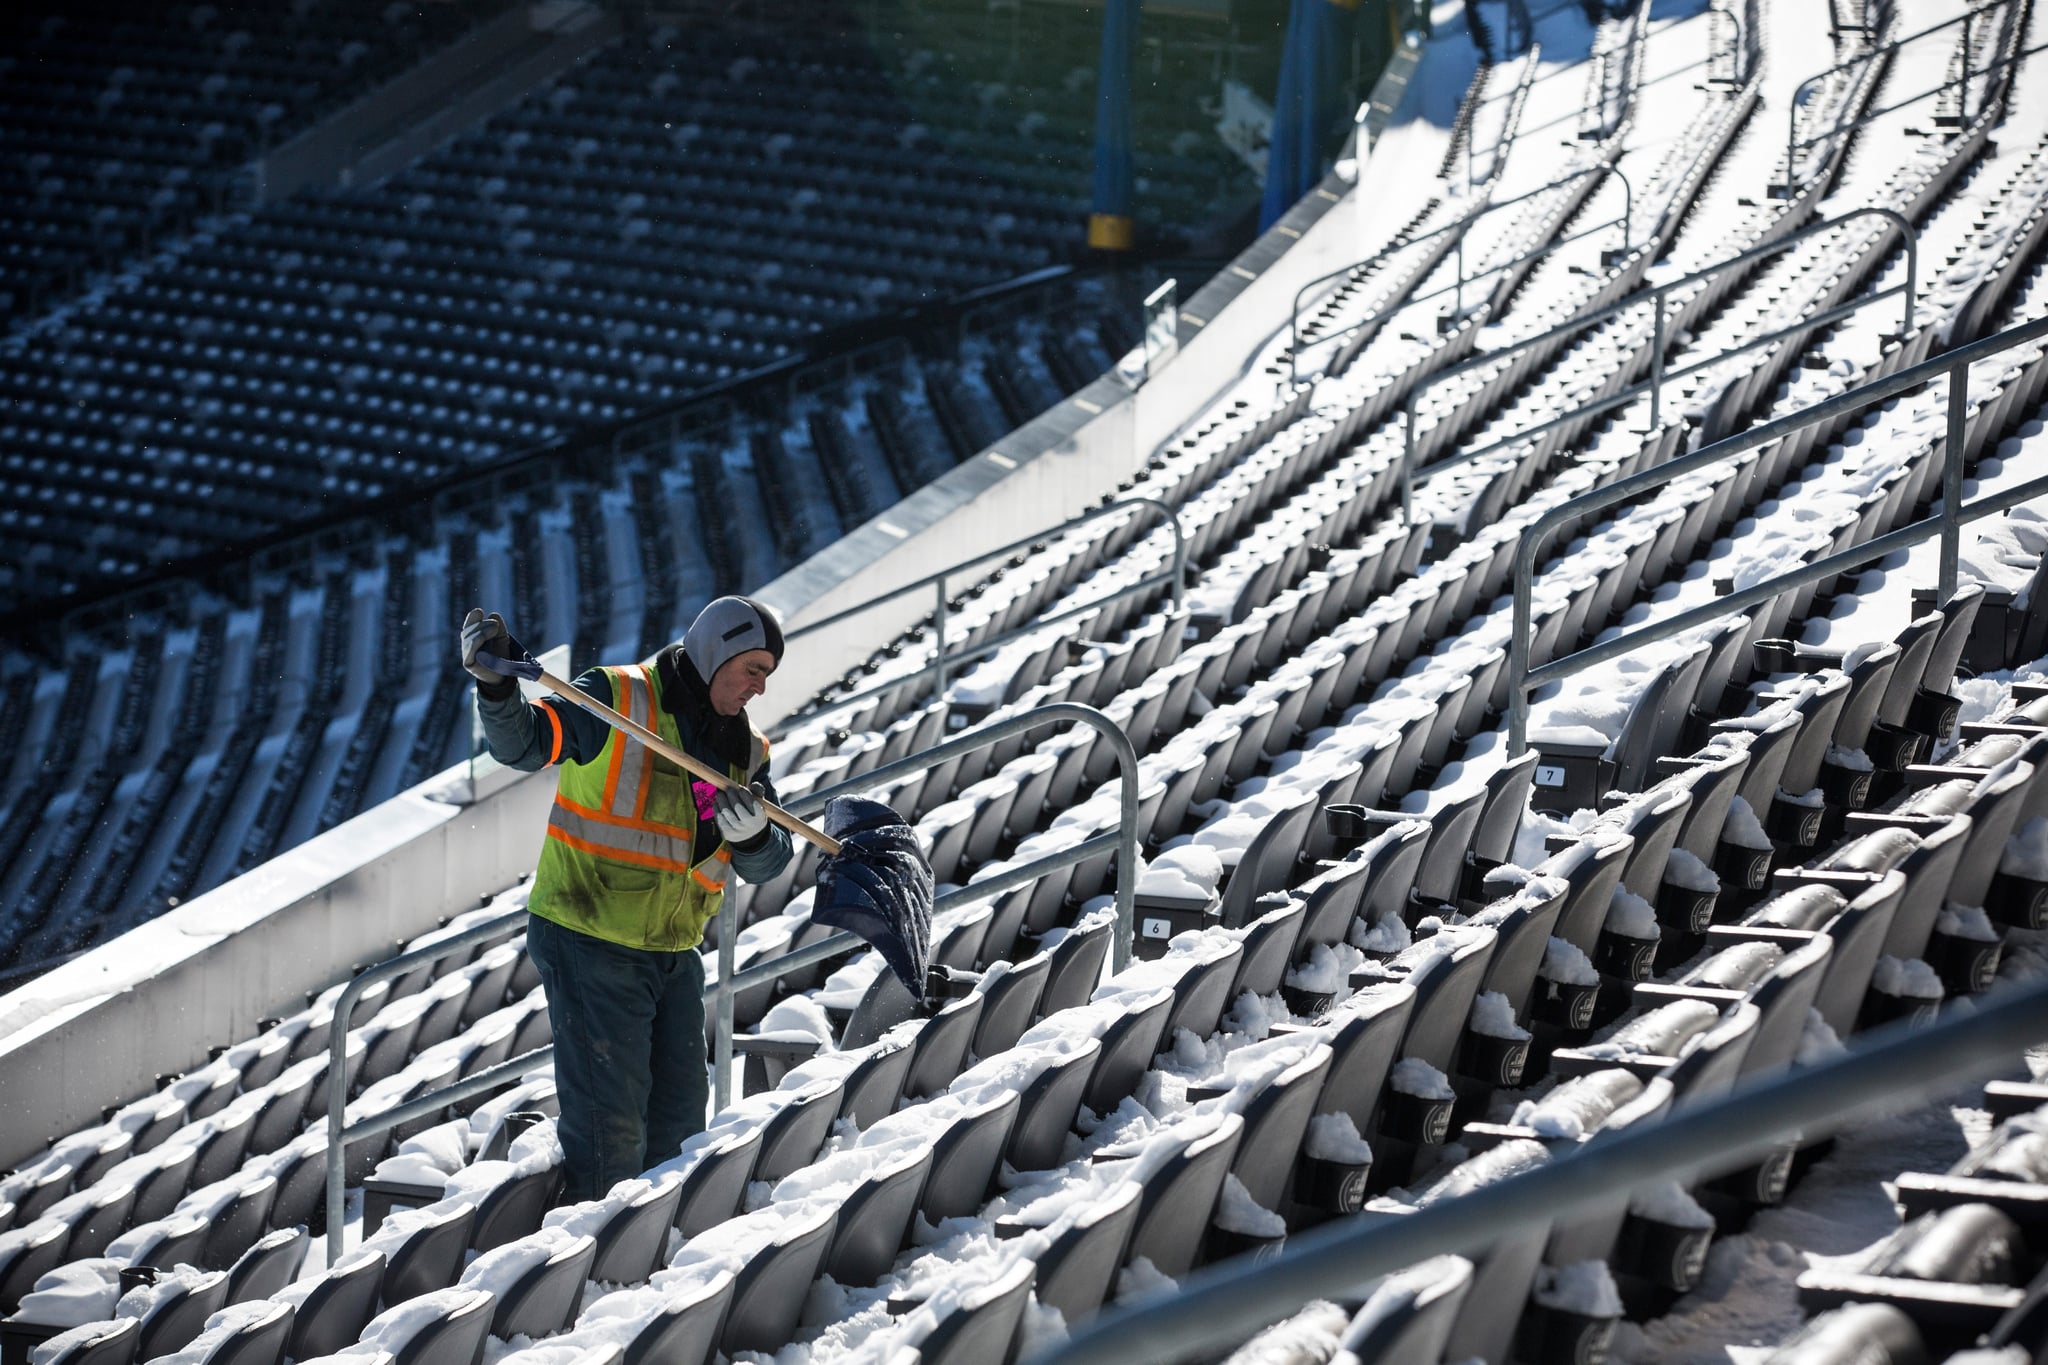 And this year, workers are literally shoveling snow off the seats of the New Jersey stadium.